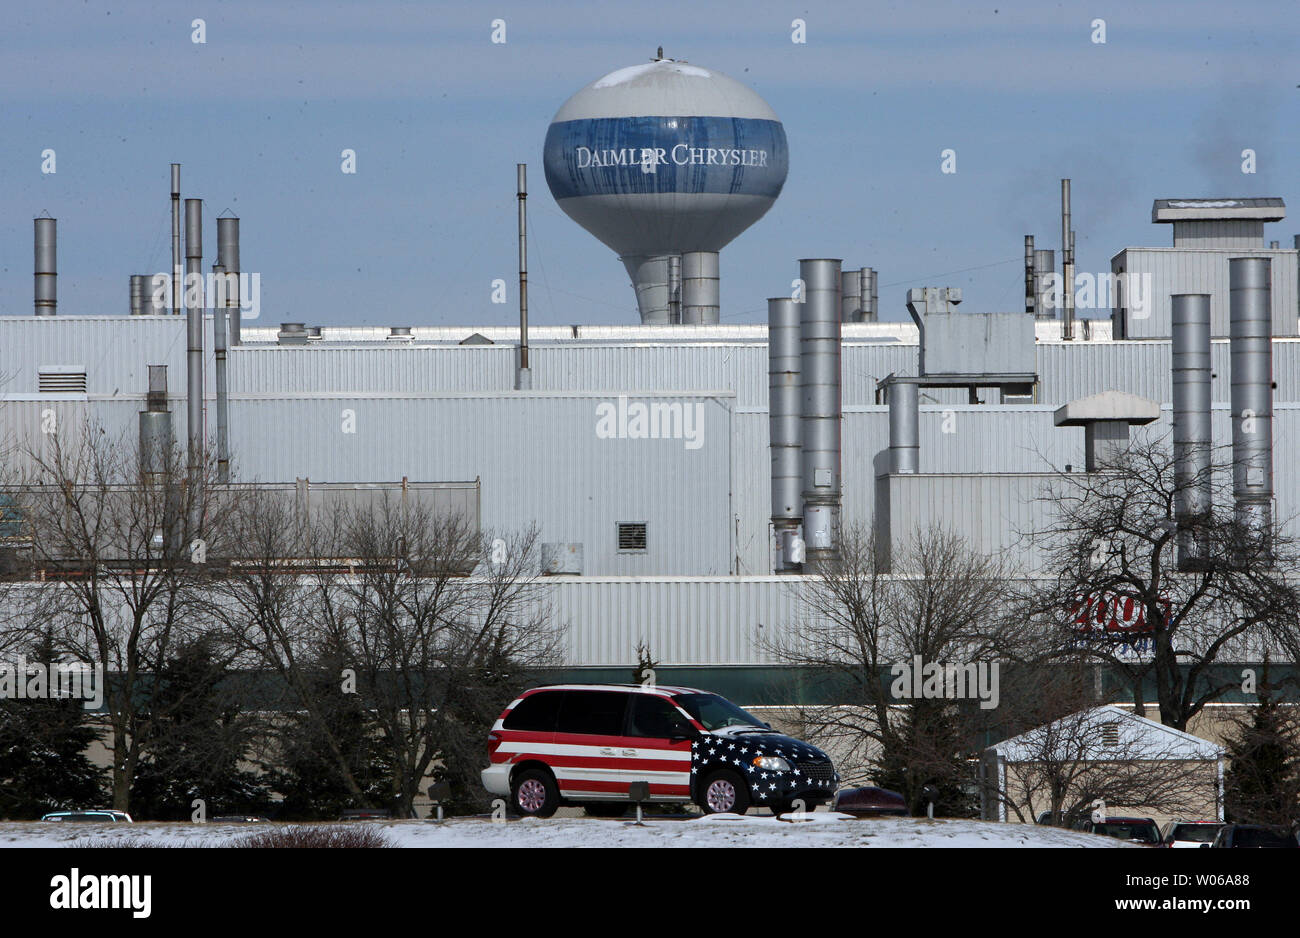 A Town and Country mini van sits near the Chrysler Group's South plant where it was assembled in Fenton, Missouri on February 14, 2007. Daimler-Chrysler announced a restructuring plan that will result in 1300 employees losing their job at the assembly plant. The South plant, where the Dodge Caravan and the Grand Caravan, and Chrysler Town & Country minivans are assembled, will lose the second shift. (UPI Photo/Bill Greenblatt) Stock Photo